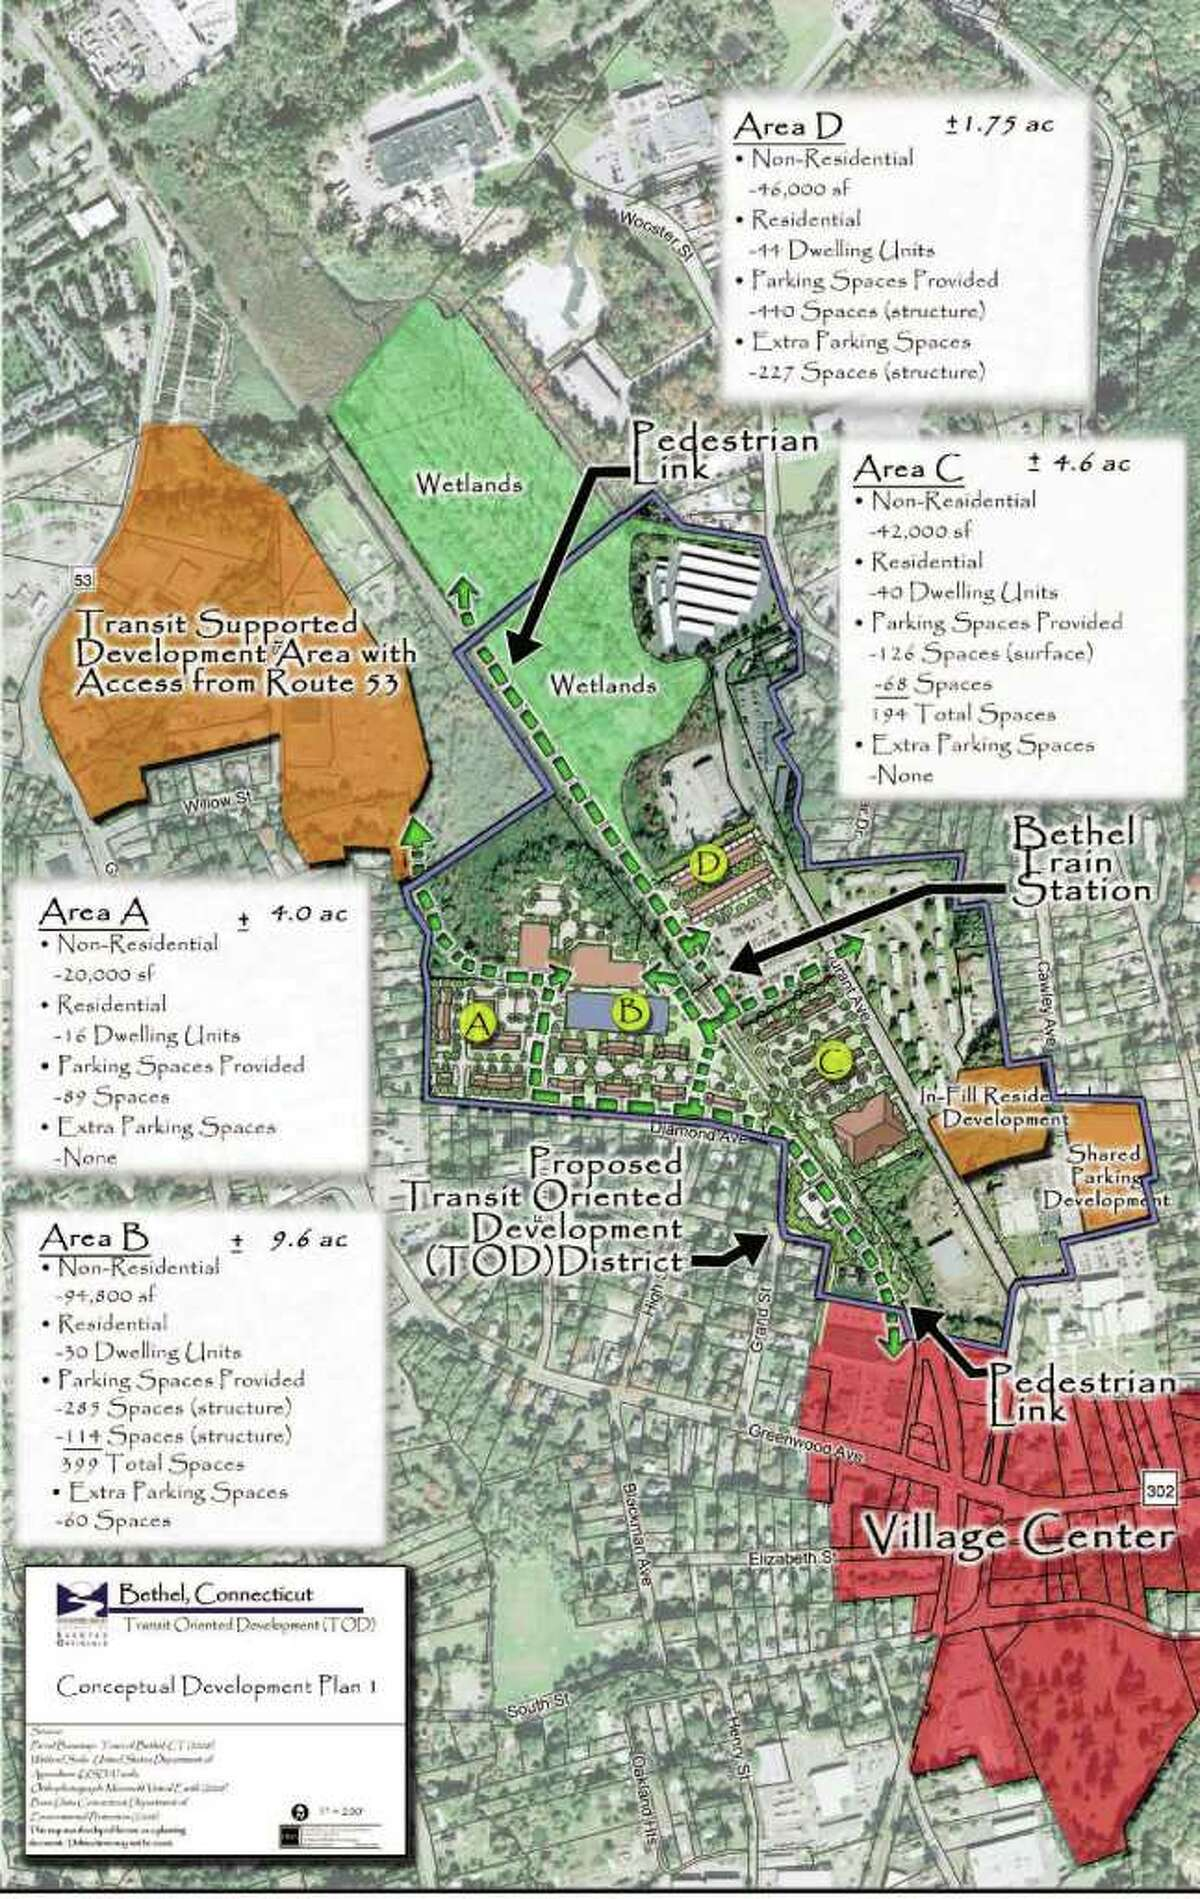 The Bethel Planning and Zoning Commission has a conceptual plan for a proposed transit oriented development district that encompasses 133 acres around the train station that would be rezoned for mxed use.